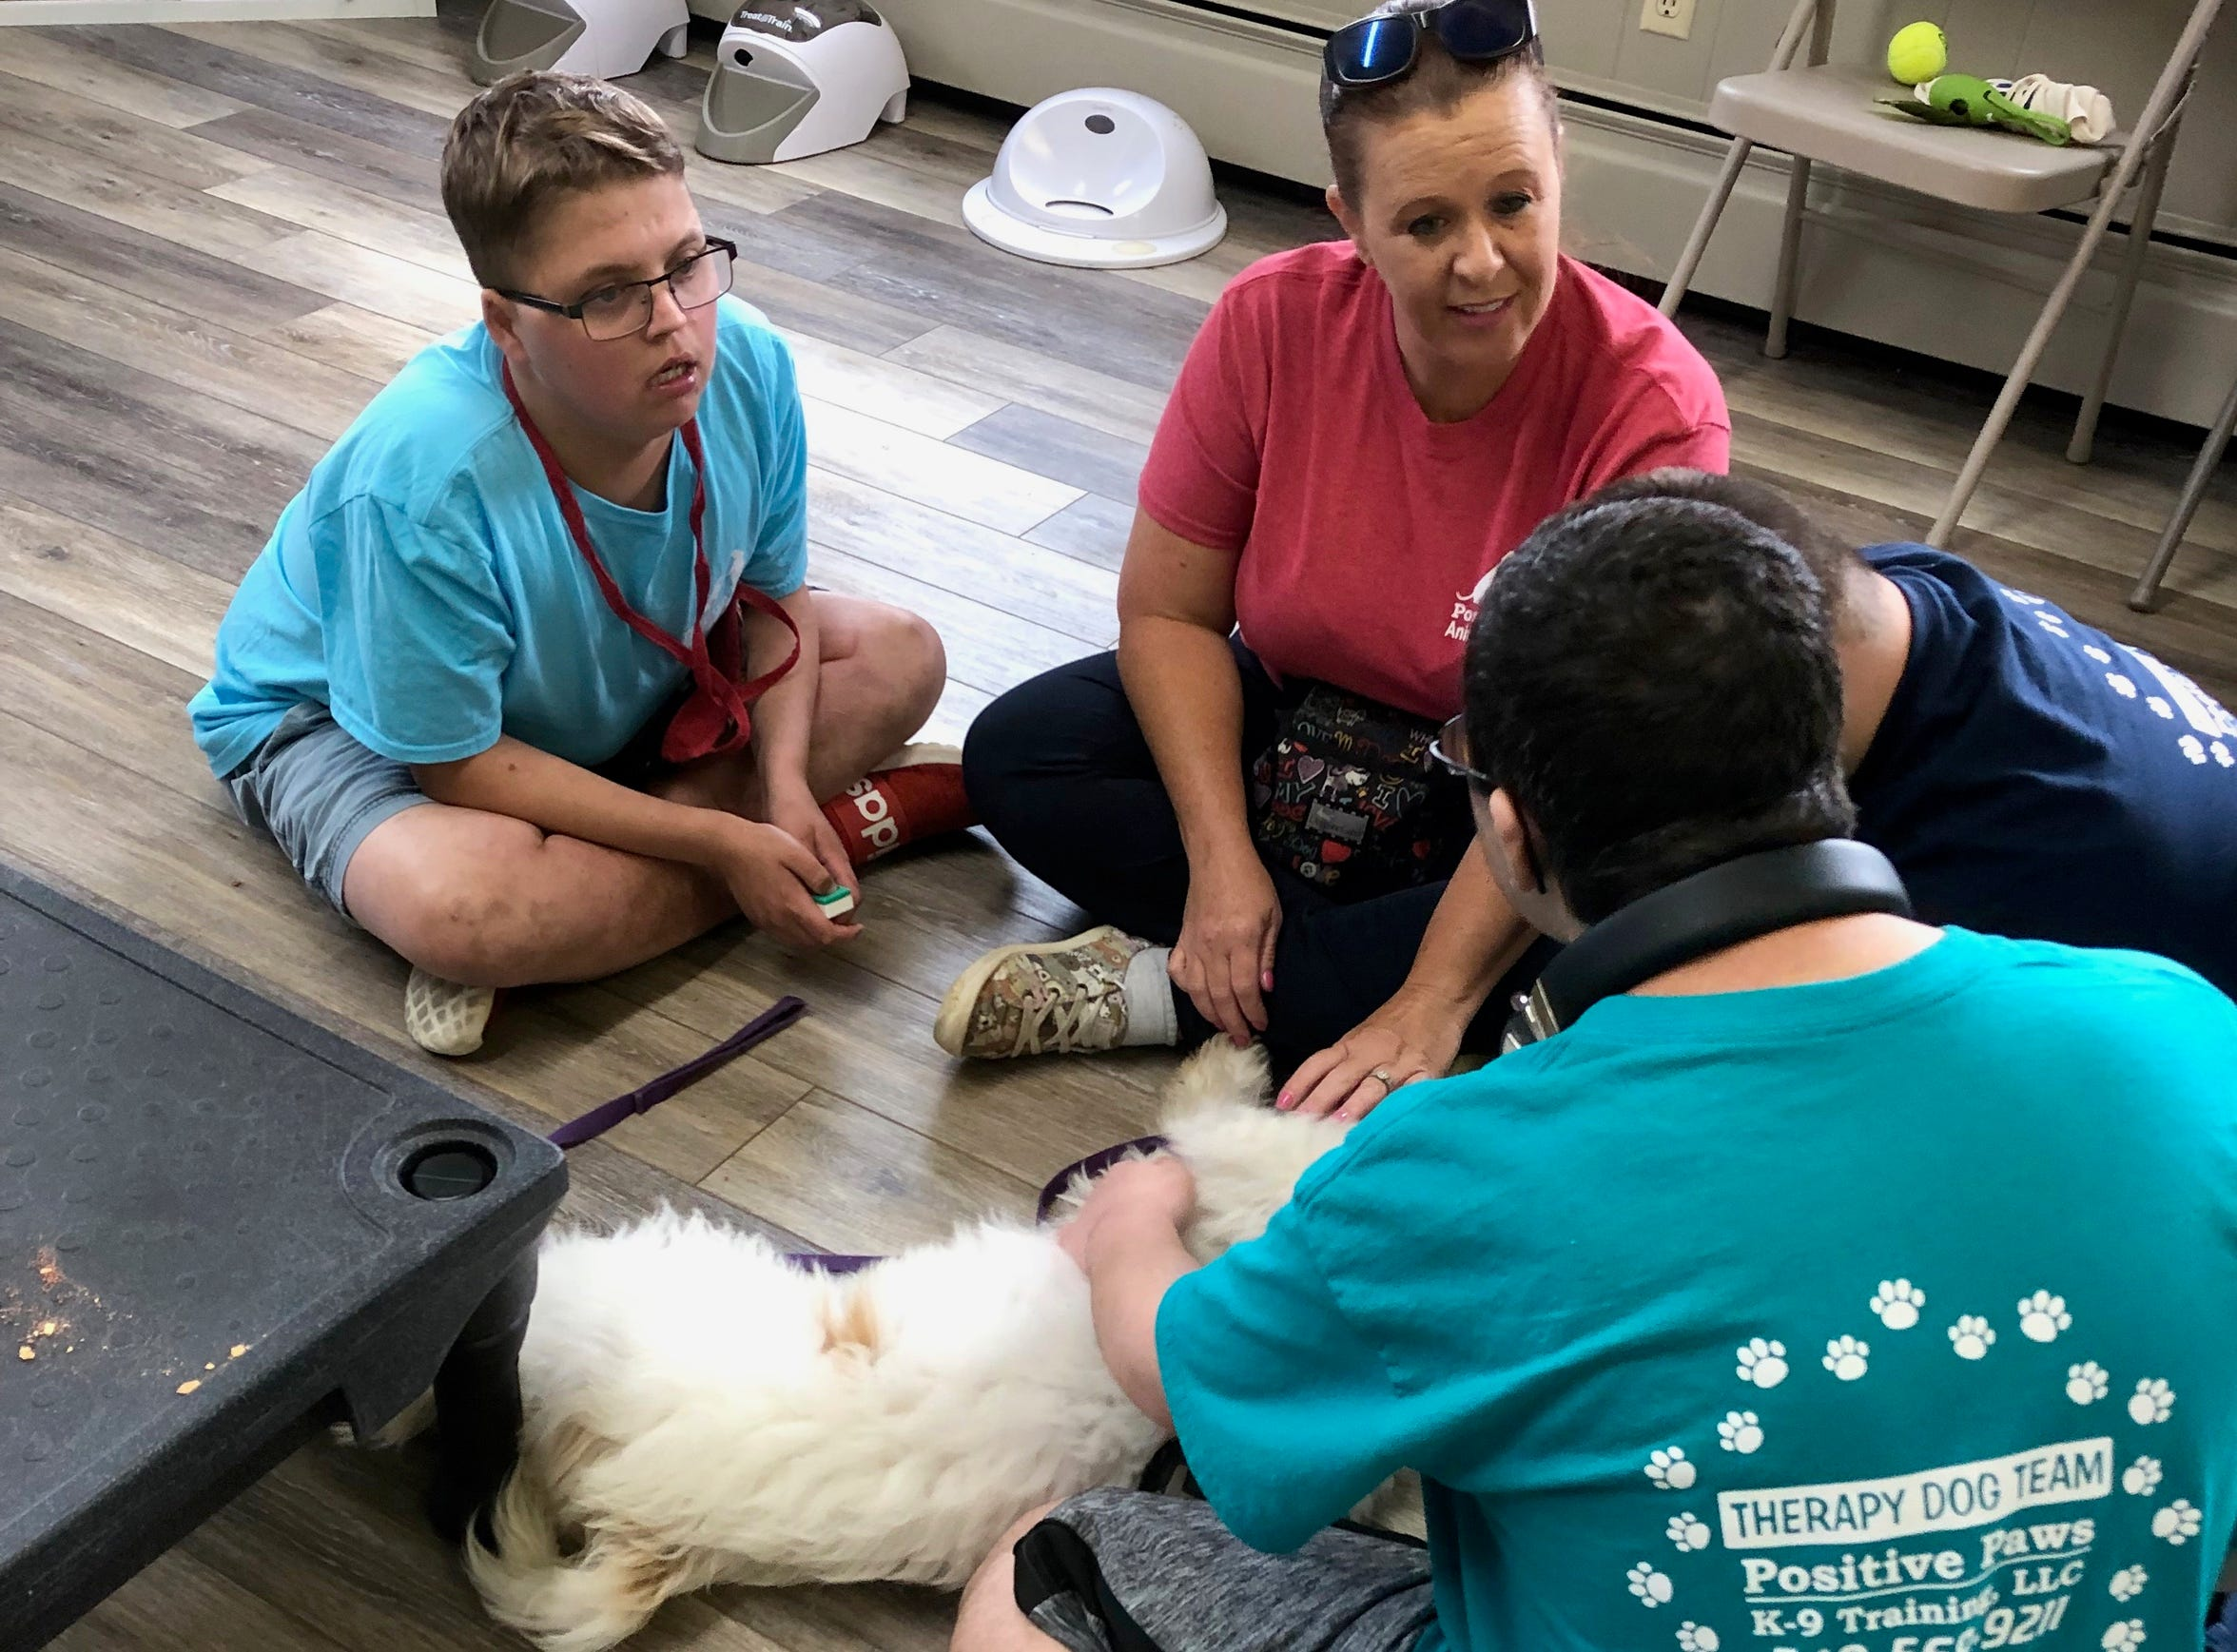 Young adults from the Augusta County Regional Post High School Program work four days a week at God's Canine Angels and Positive Paws in Stuarts Draft, Virginia. While there, they also train with their own service dogs.